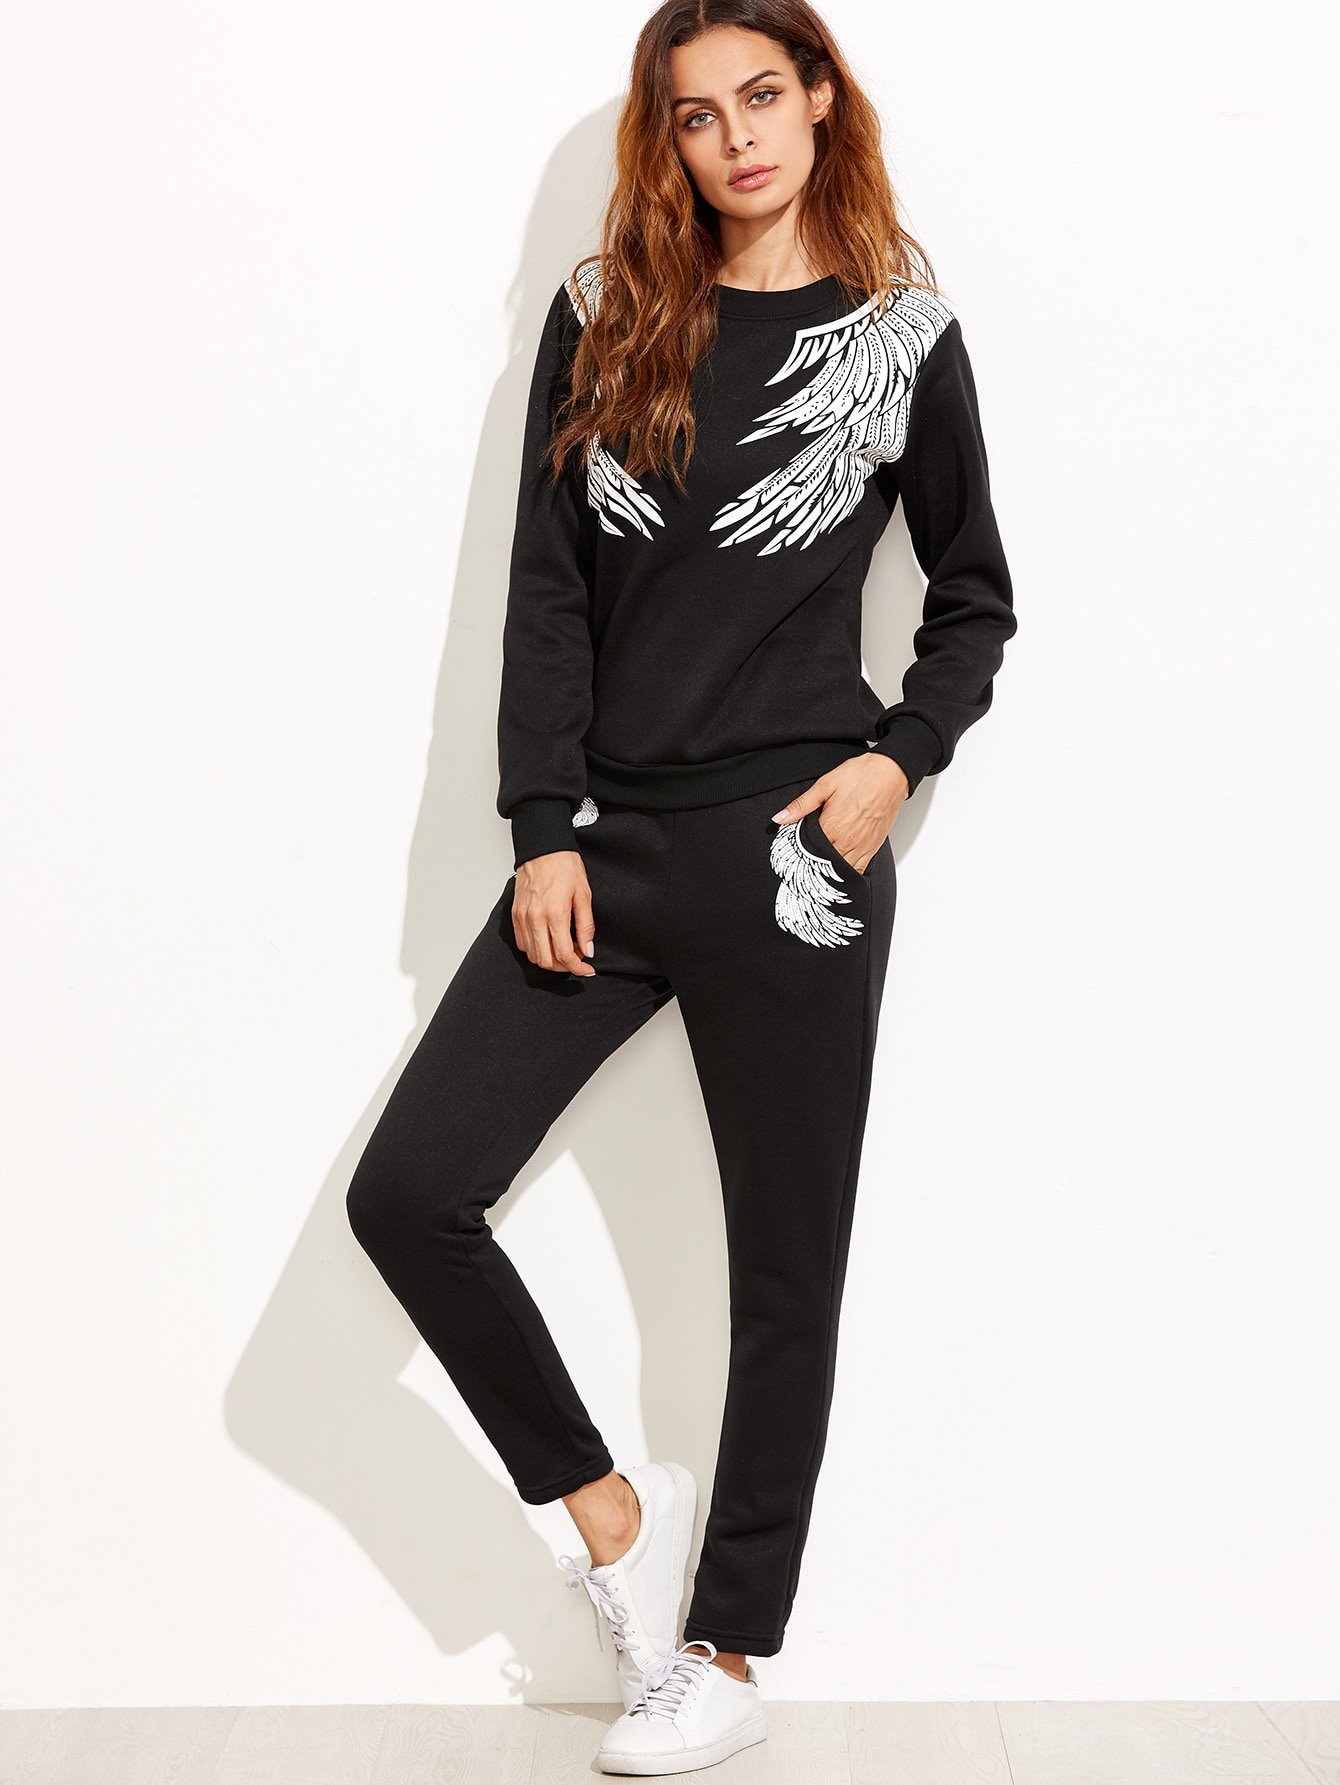 Black Angel Wings Print Sweatshirt With Pants